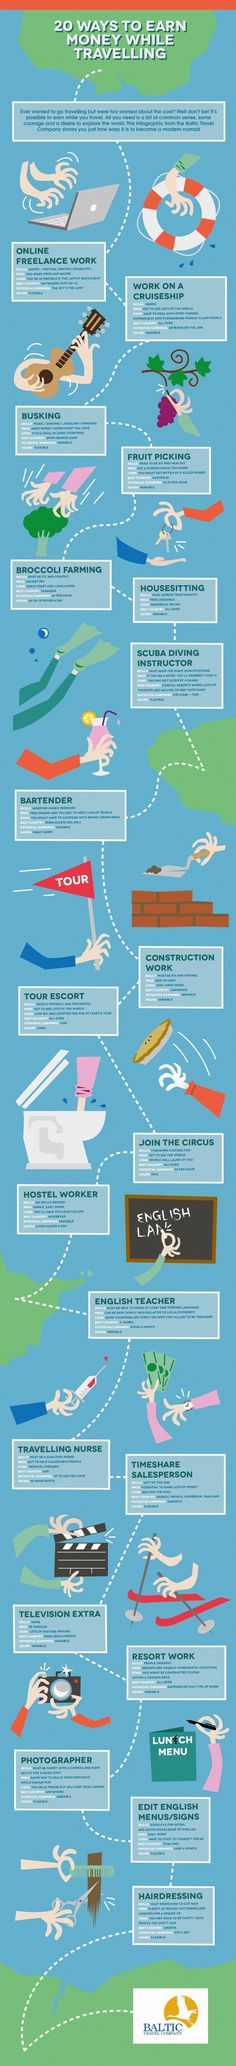 20 Ways to Earn While Traveling #infographic #Travel #infografía